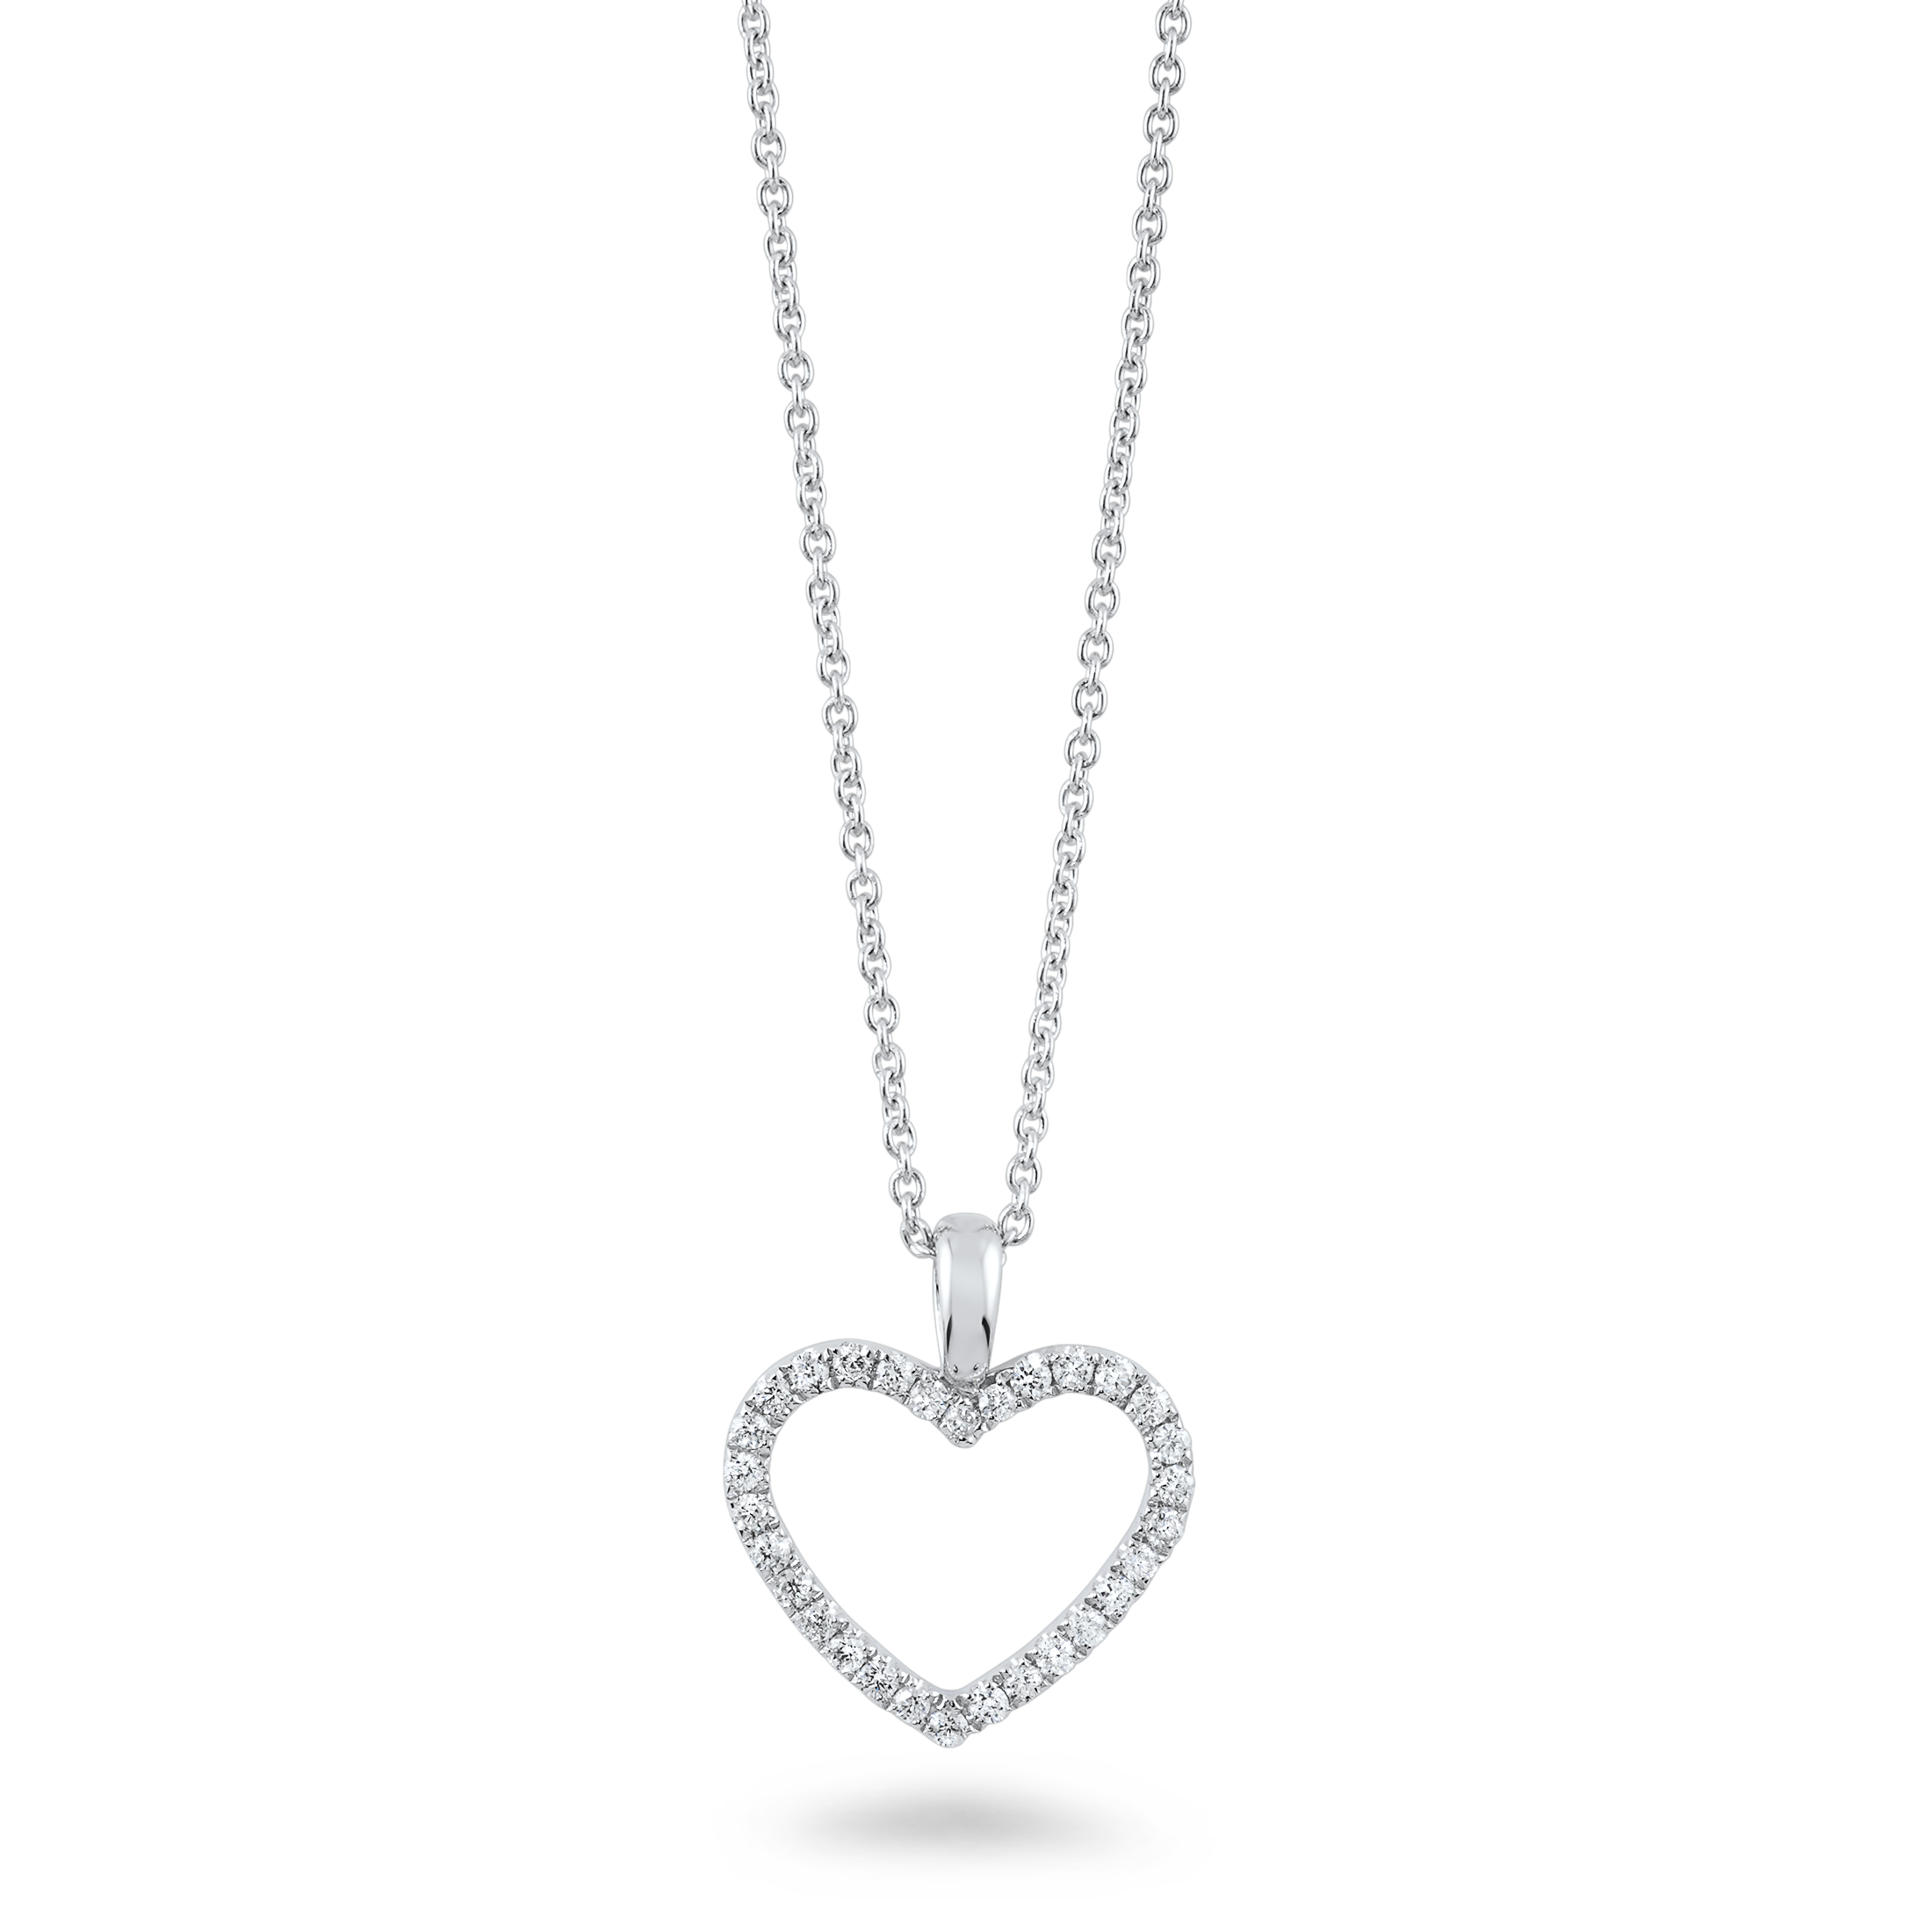 uploads necklace necklace PNG25 64